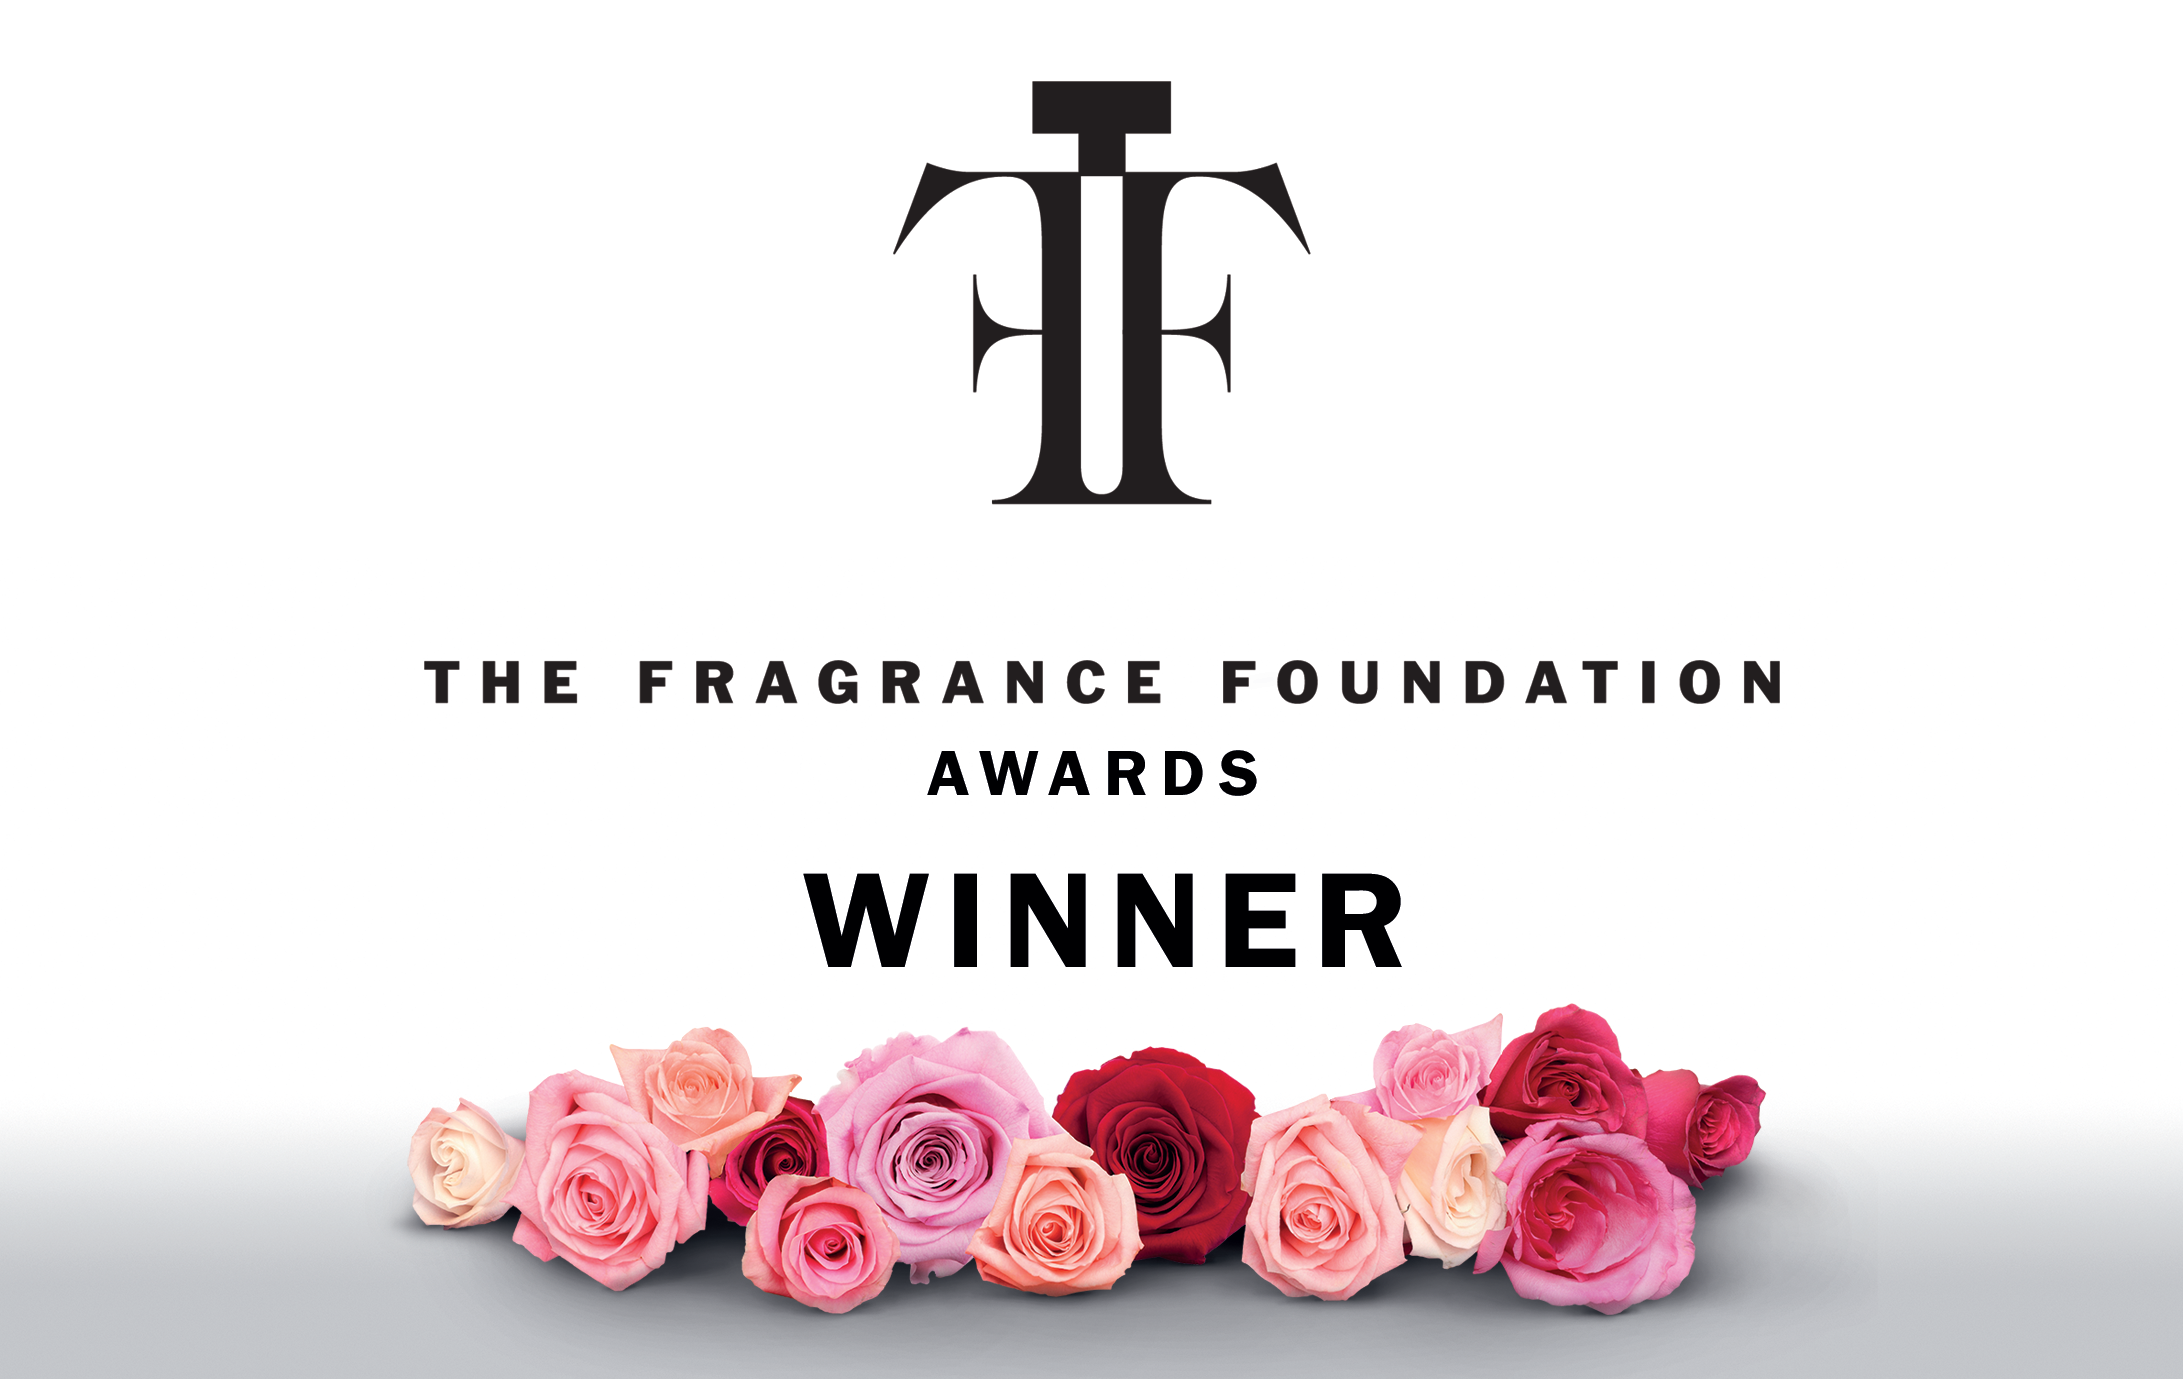 The Fragrance foundation Awards Winner